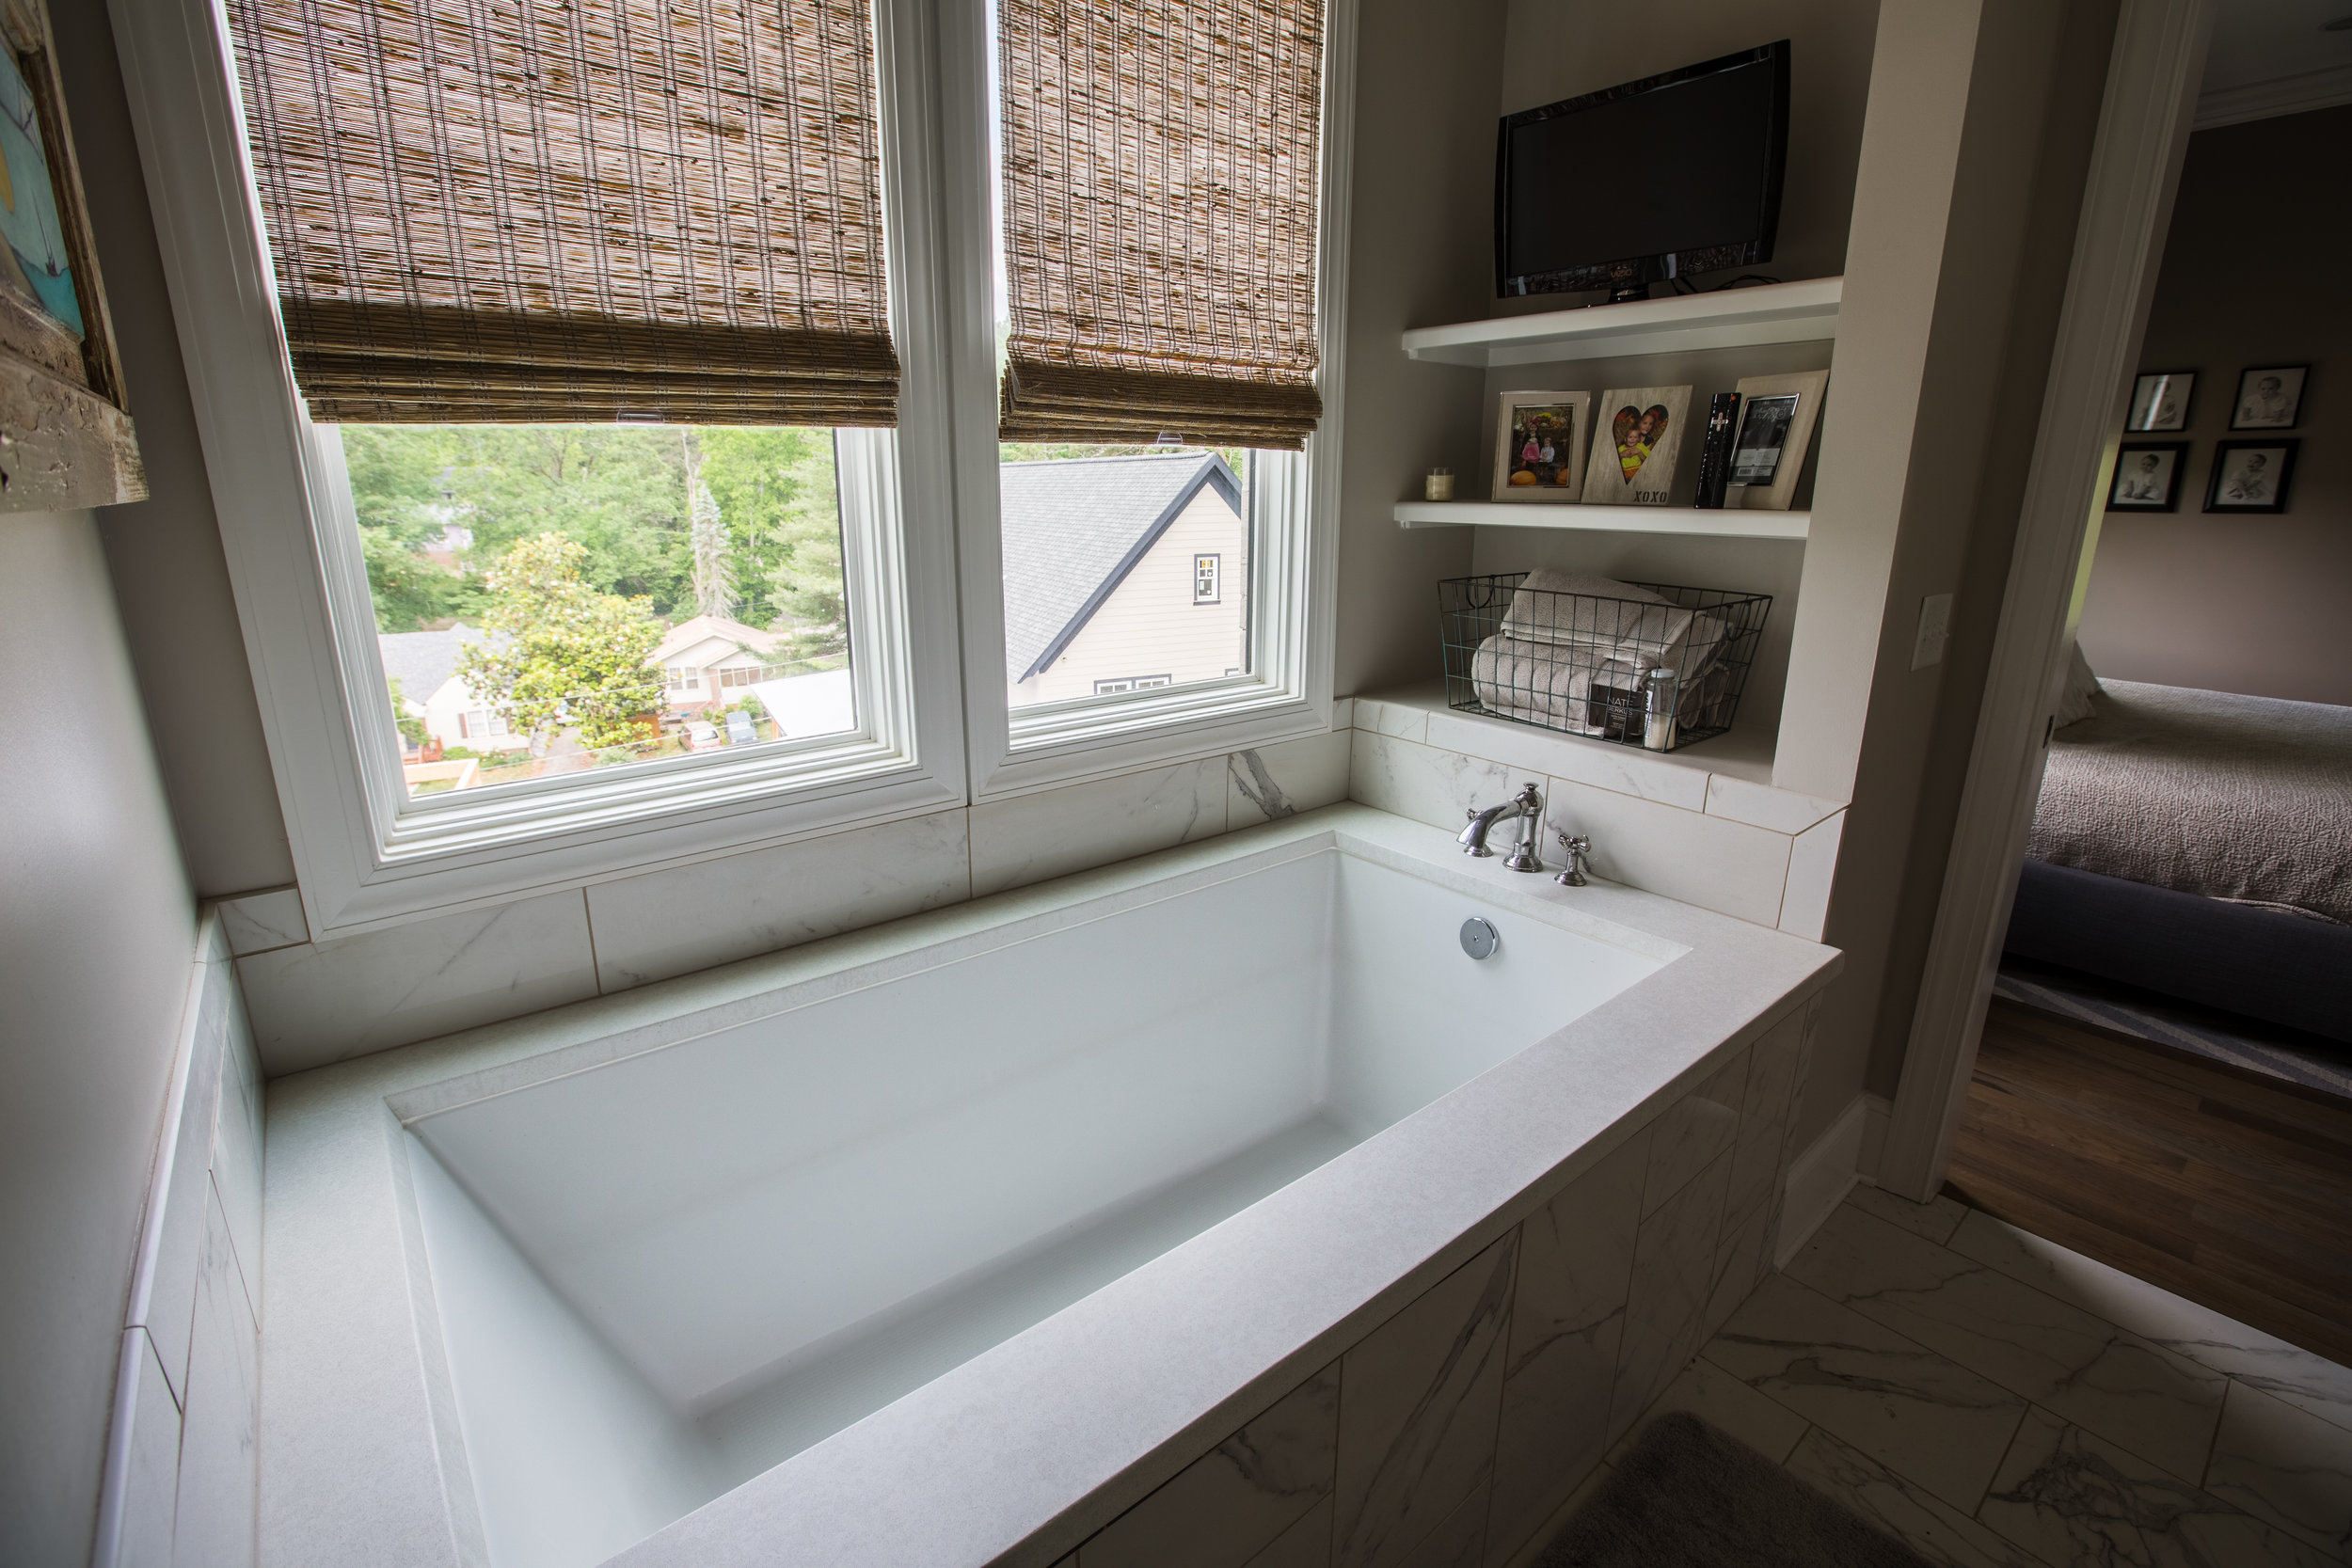 Sometimes an unassuming bath surrounds is all you need. Use what works.  #residential